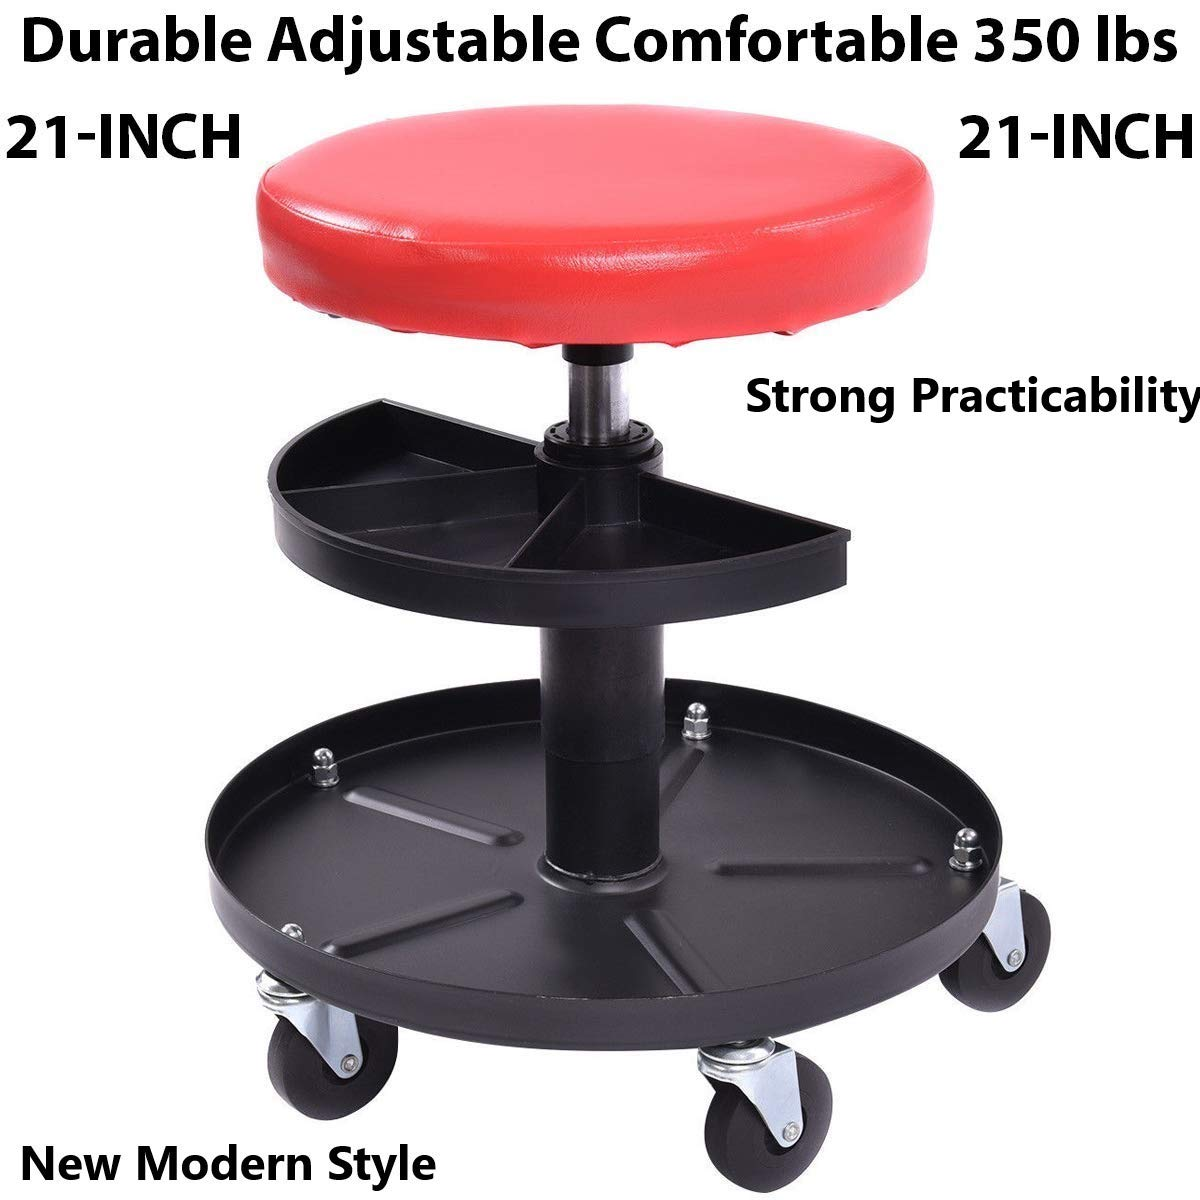 WINMART Rolling Stool Pneumatic Chair Tray Padded Repair Shop Garage w/ 350 lbs Capacity Rolling Stool Pneumatic Chair Tray Padded Repair Shop Garage w/ 350 lbs Capacity by WINMART